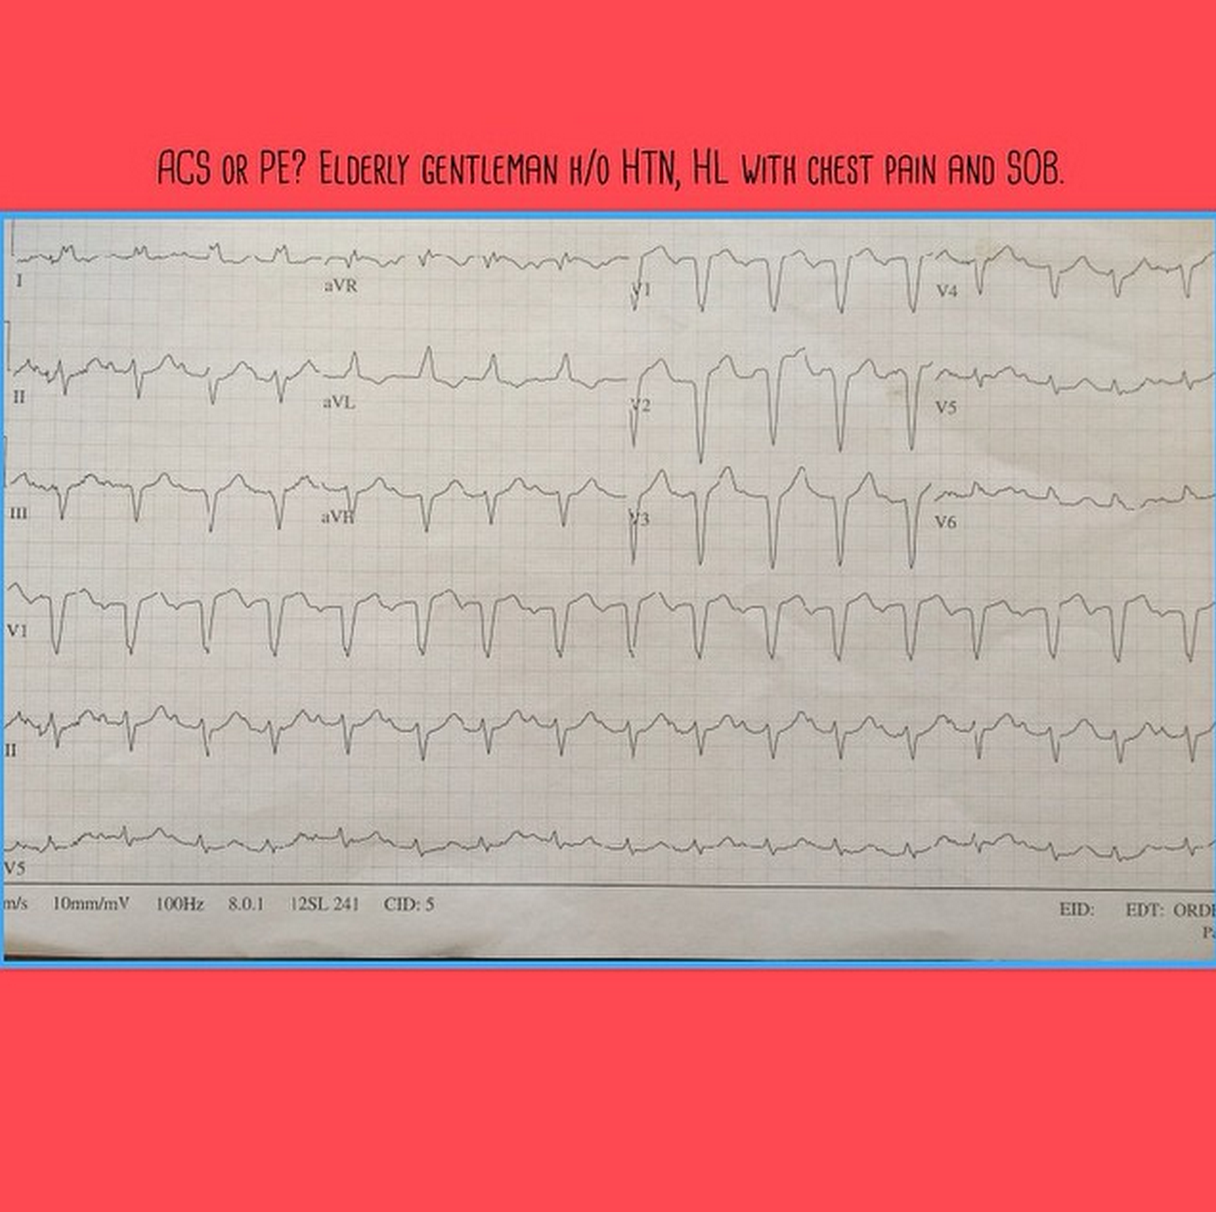 Elderly male with chest pain and SOB. What is your diagnosis?